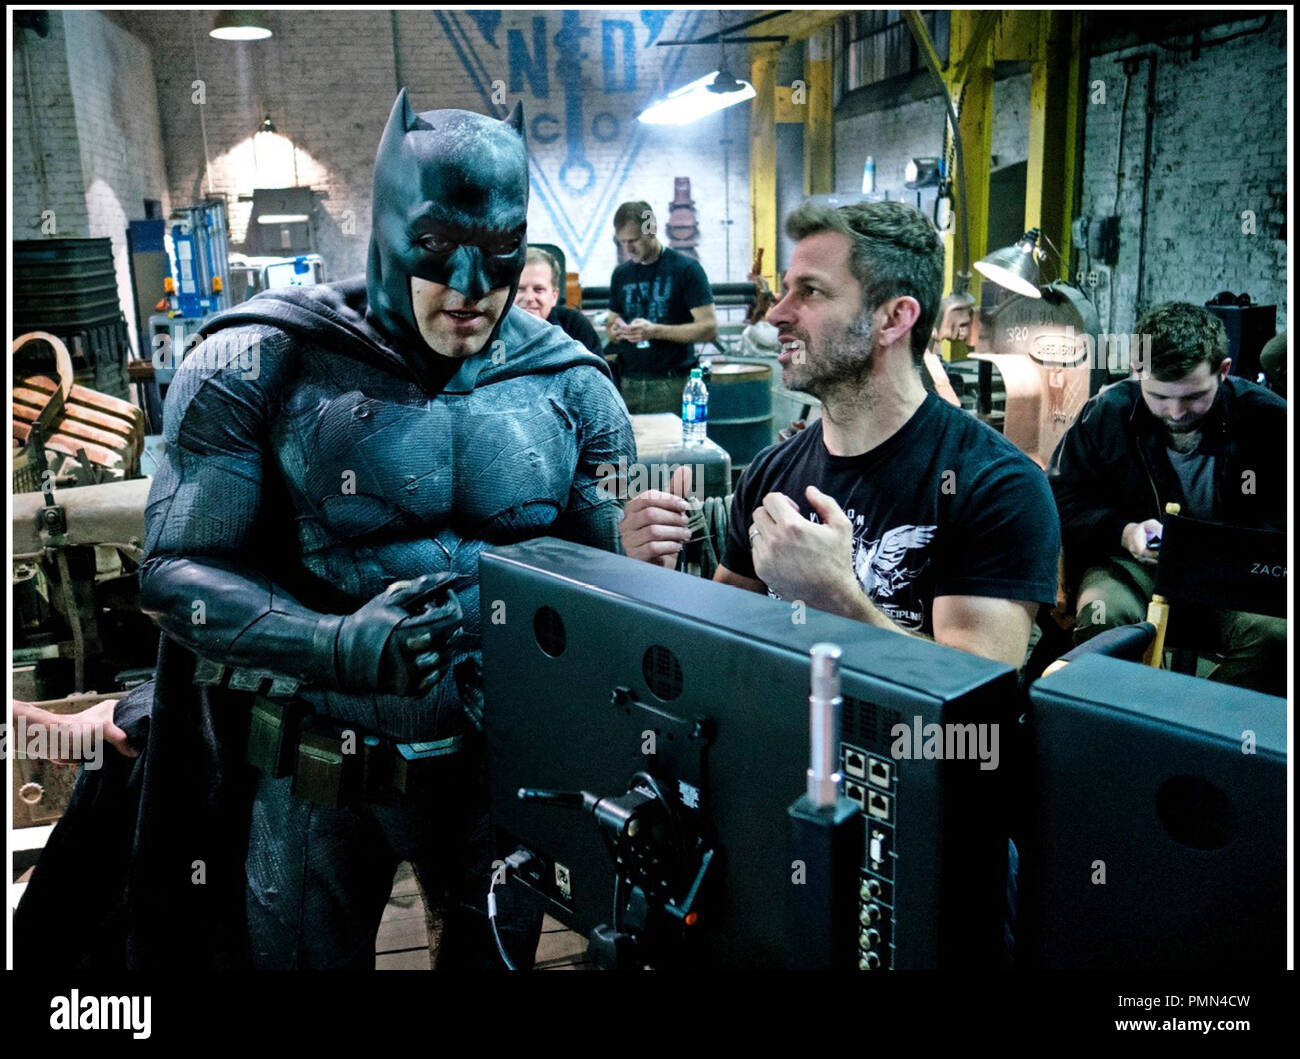 Prod DB © Warner Bros. - DC Entertainment - RatPac-Dune Entertainment - Syncopy / DR BATMAN V SUPERMAN: L'AUBE DE LA JUSTICE (BATMAN VS. SUPERMAN: DAWN OF JUSTICE) de Zack Snyder 2016 USA avec Ben Affleck et Zack Snyder sur le tournage - Stock Image